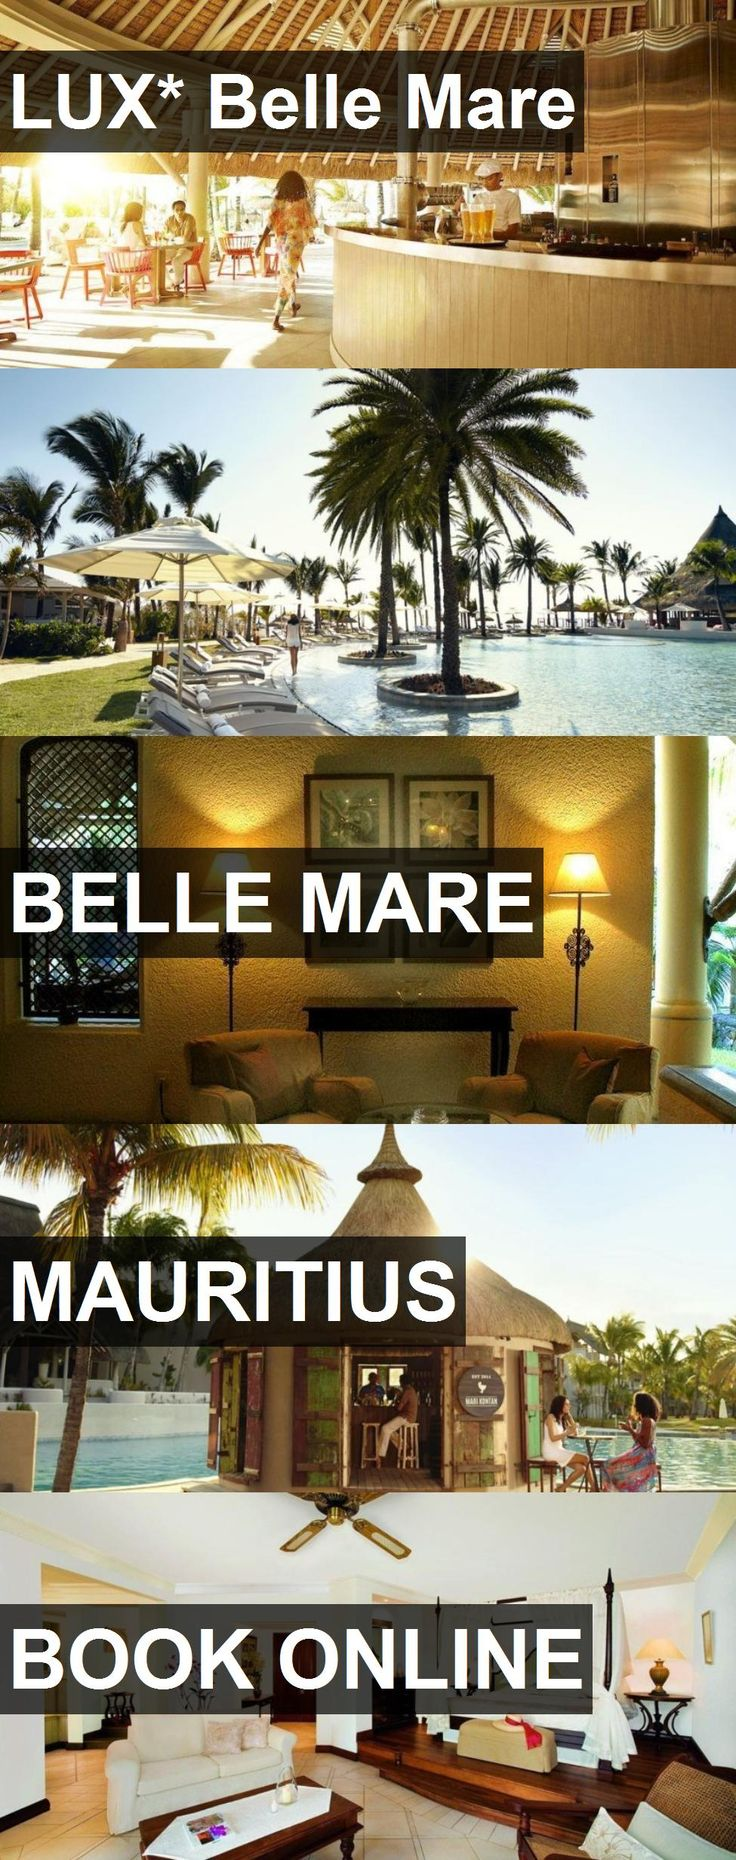 Hotel LUX* Belle Mare in Belle Mare, Mauritius. For more information, photos, reviews and best prices please follow the link. #Mauritius #BelleMare #LUX*BelleMare #hotel #travel #vacation